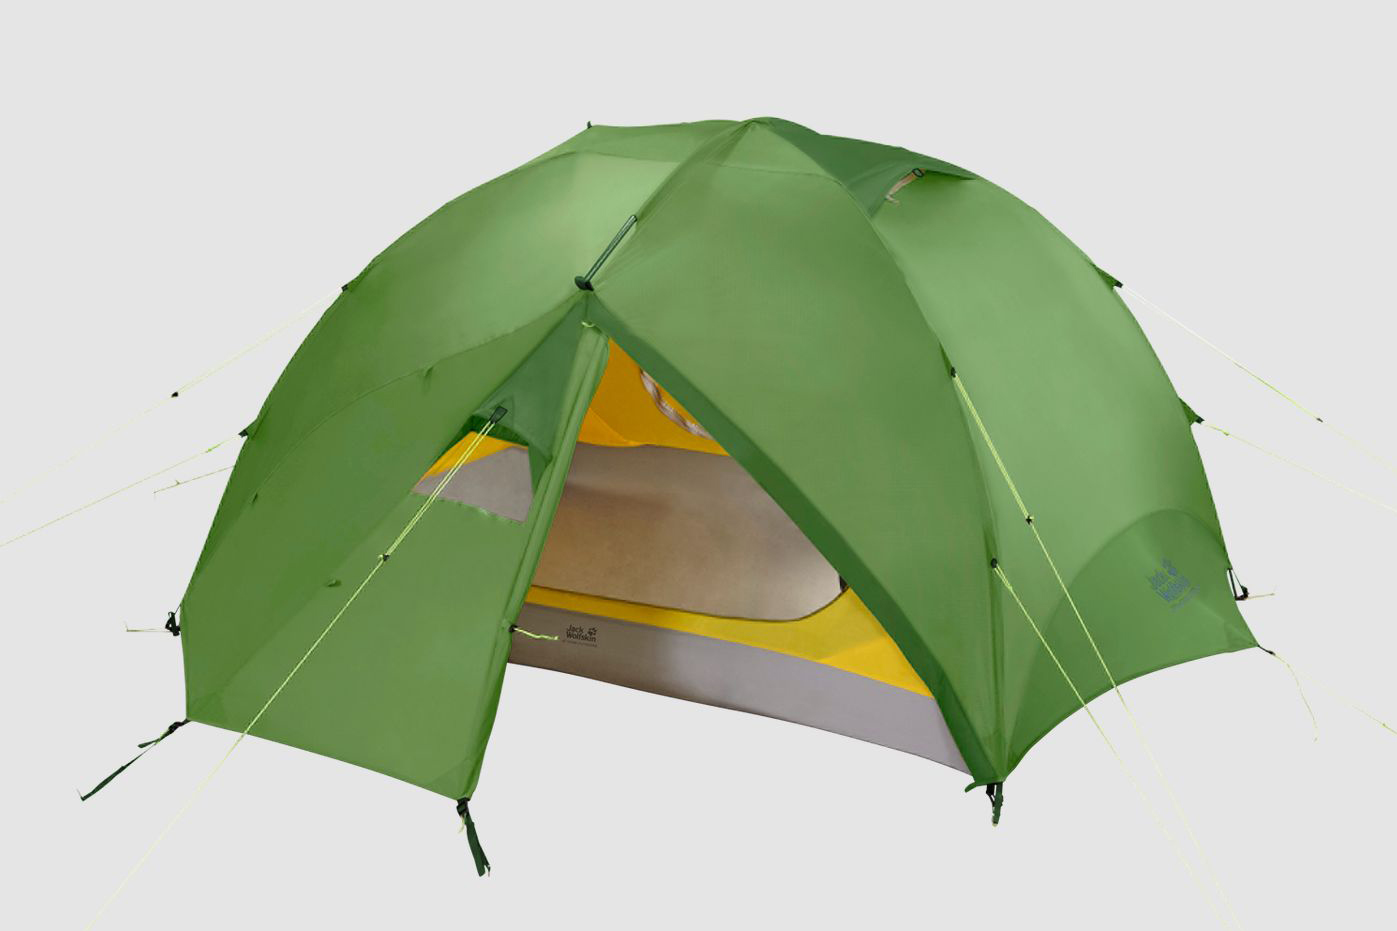 JACK WOLFSKIN Yellowstone III FR 3 Person Tent